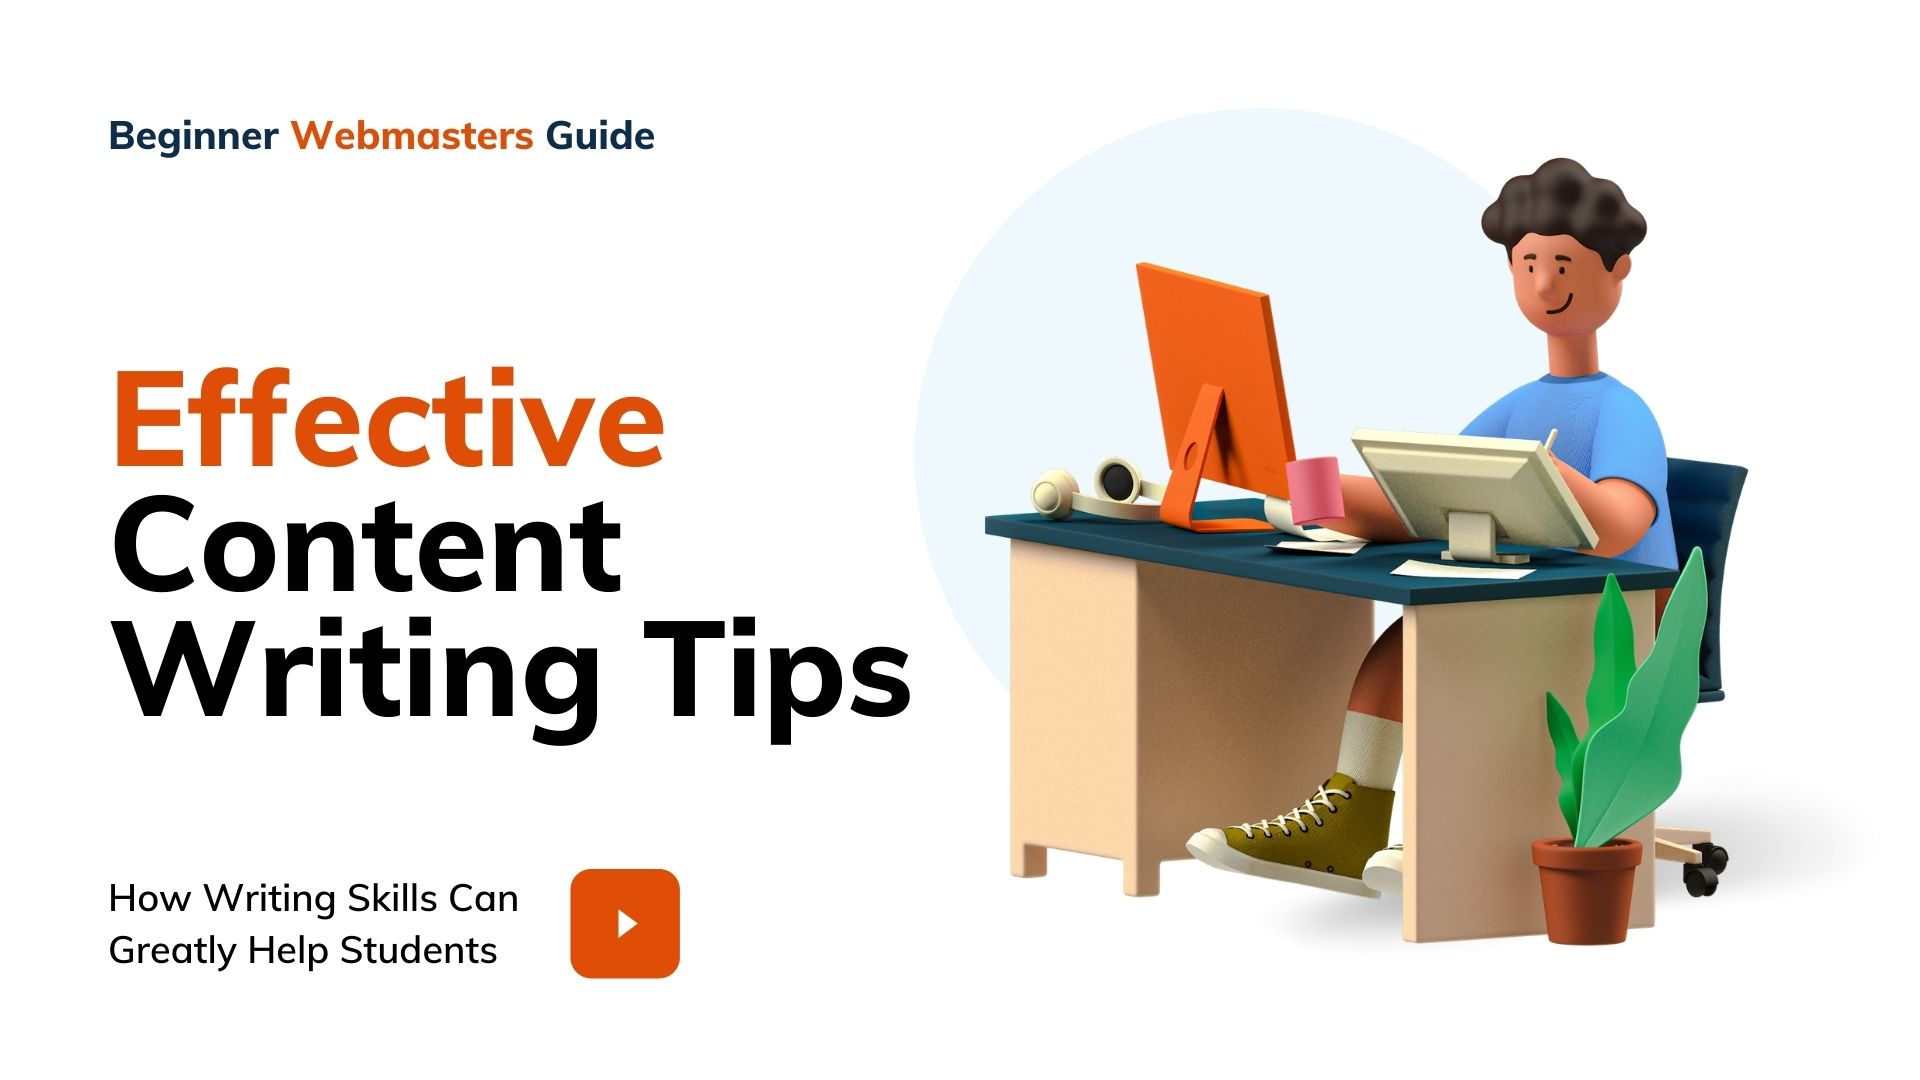 Effective Content Writing Tips